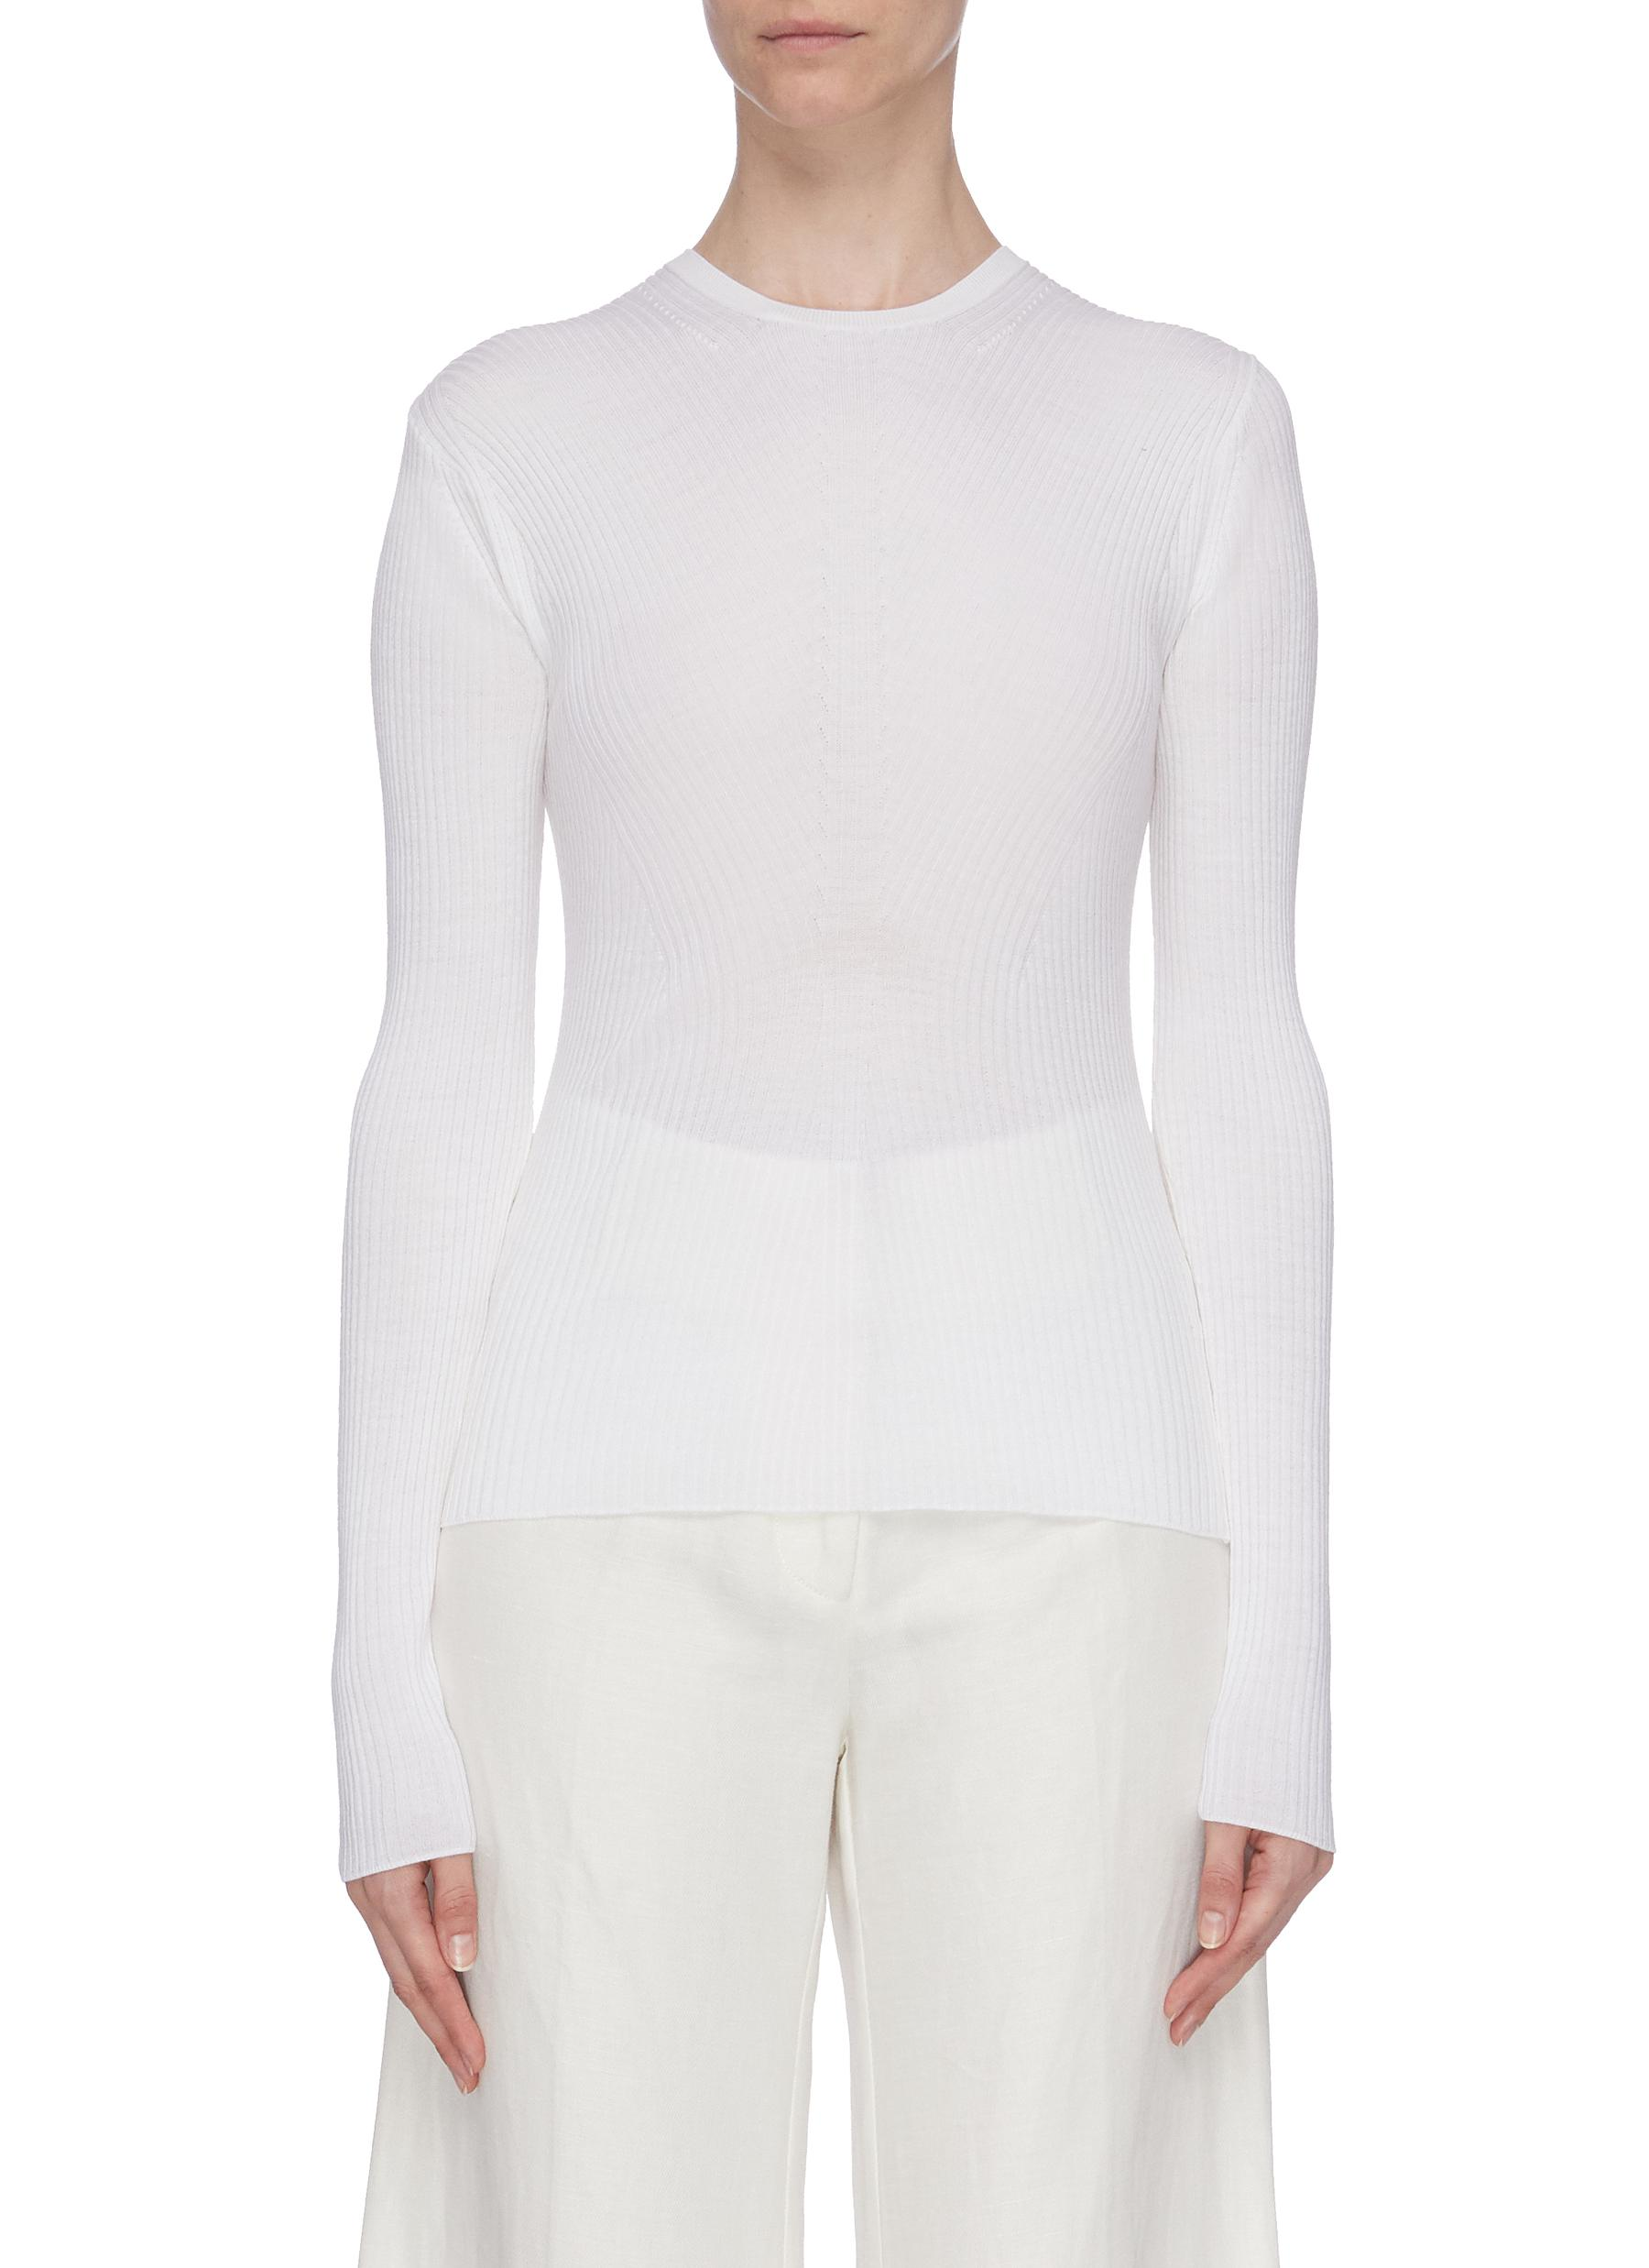 Crew neck rib top by Theory